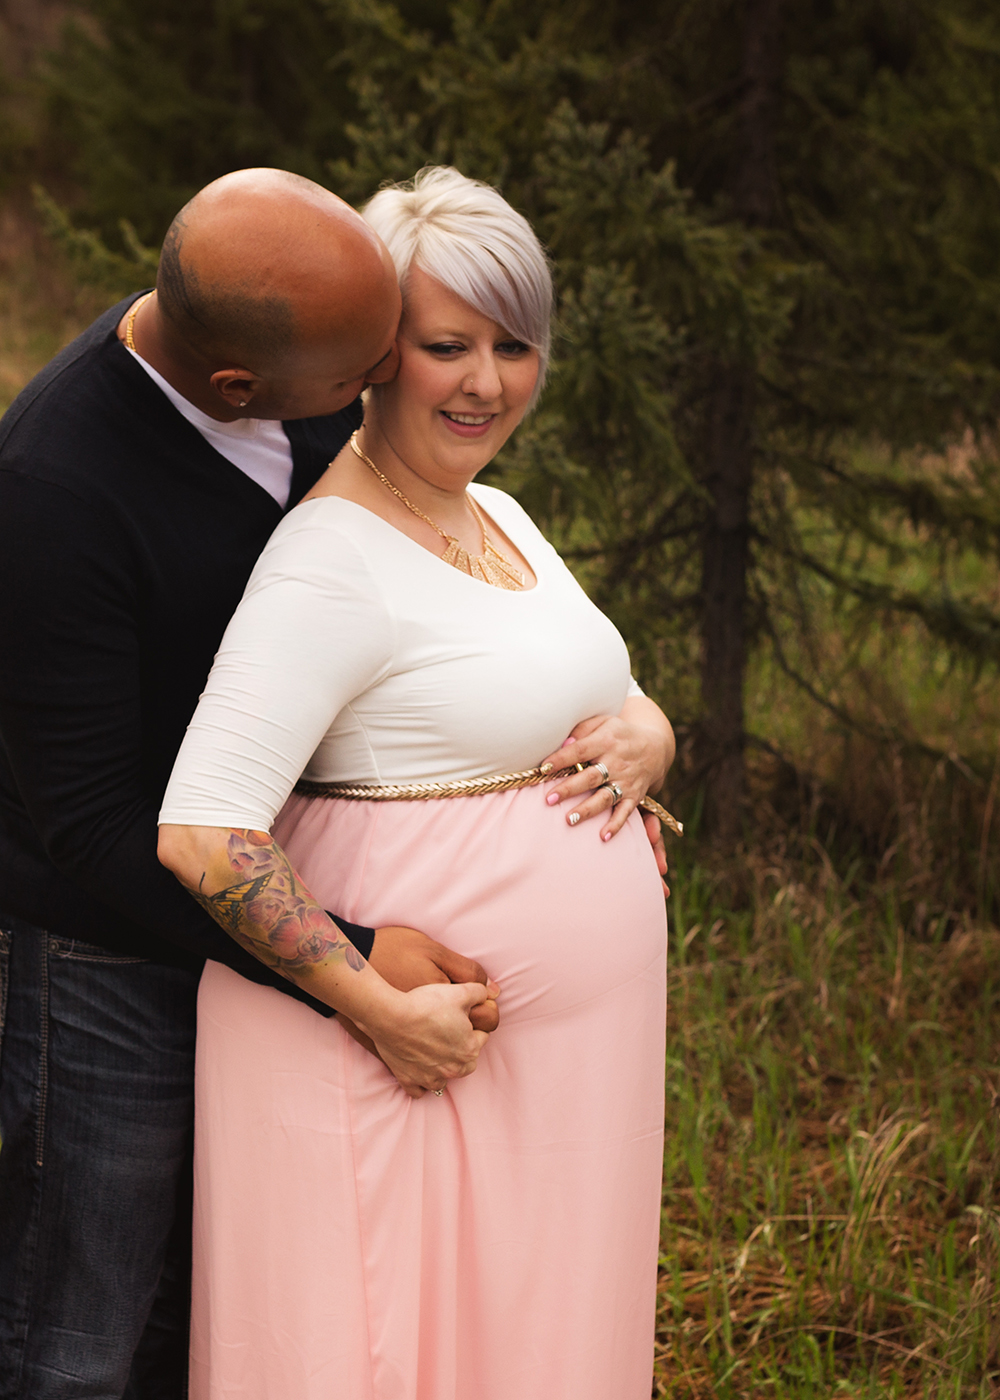 Edmonton Maternity Photographer_Chelsea Sneak Peek 8.jpg